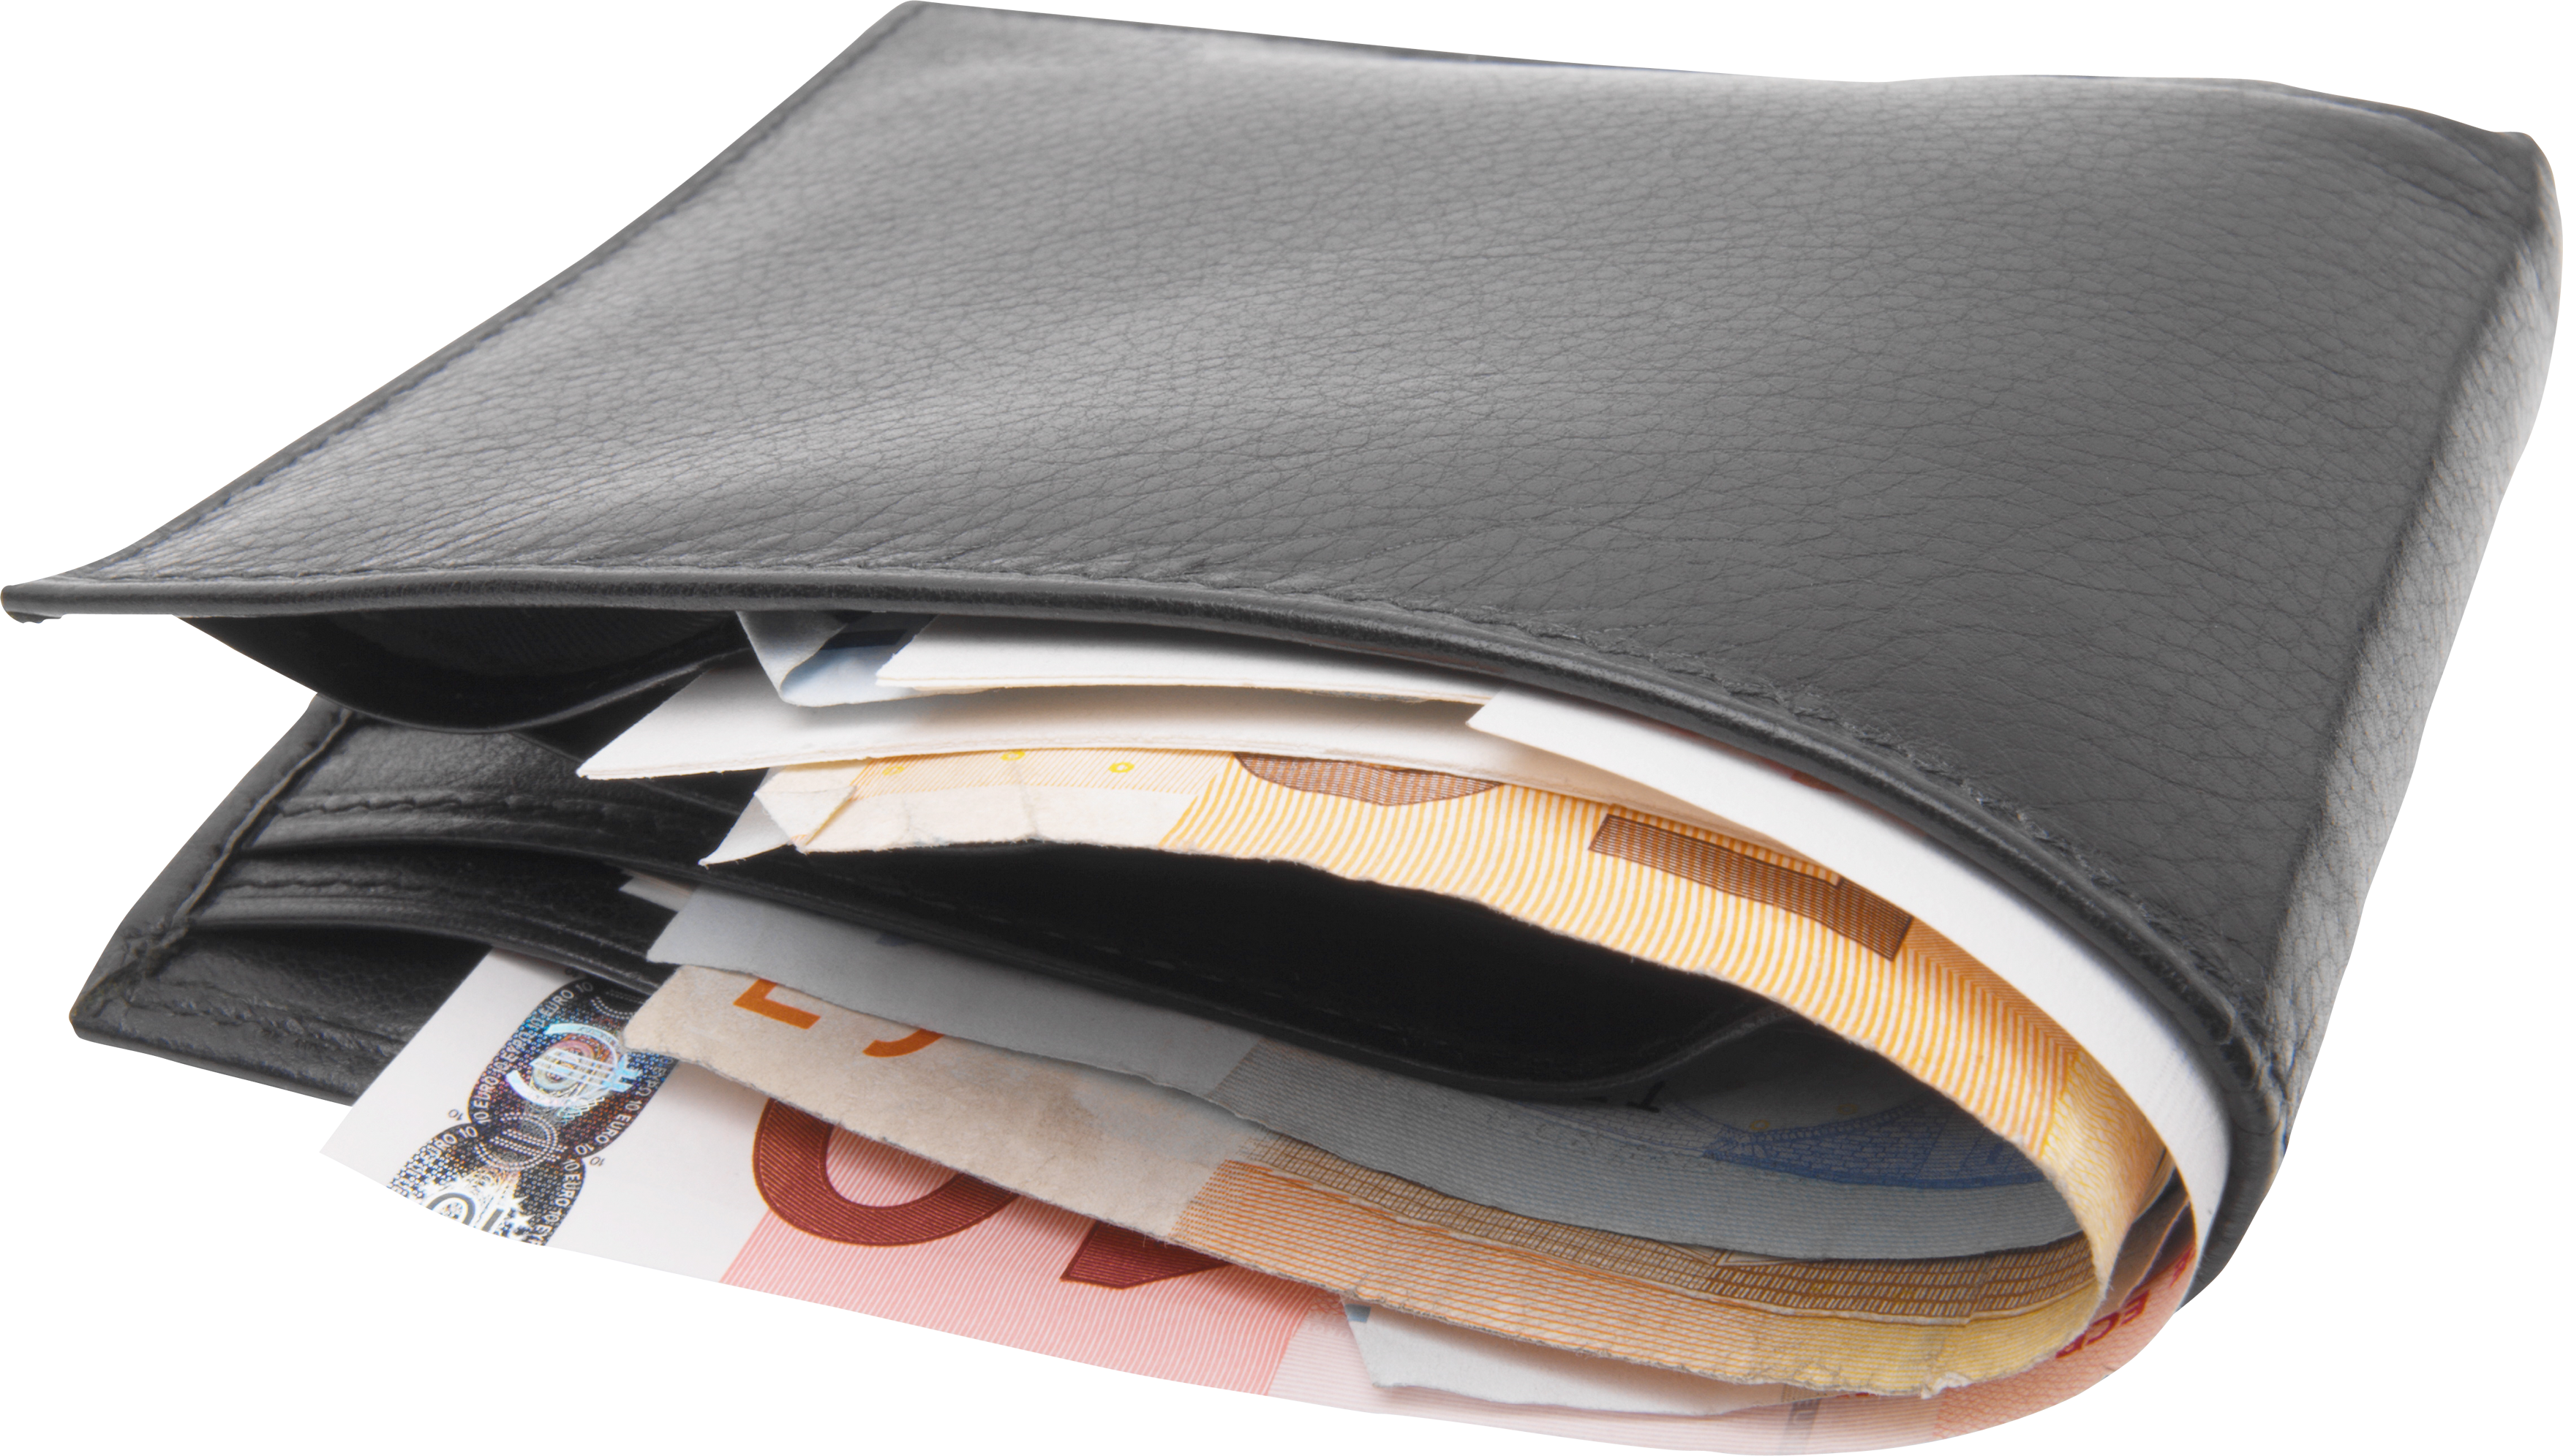 Wallet money clipart clip royalty free library Wallet With Money PNG Image - PurePNG | Free transparent CC0 PNG ... clip royalty free library